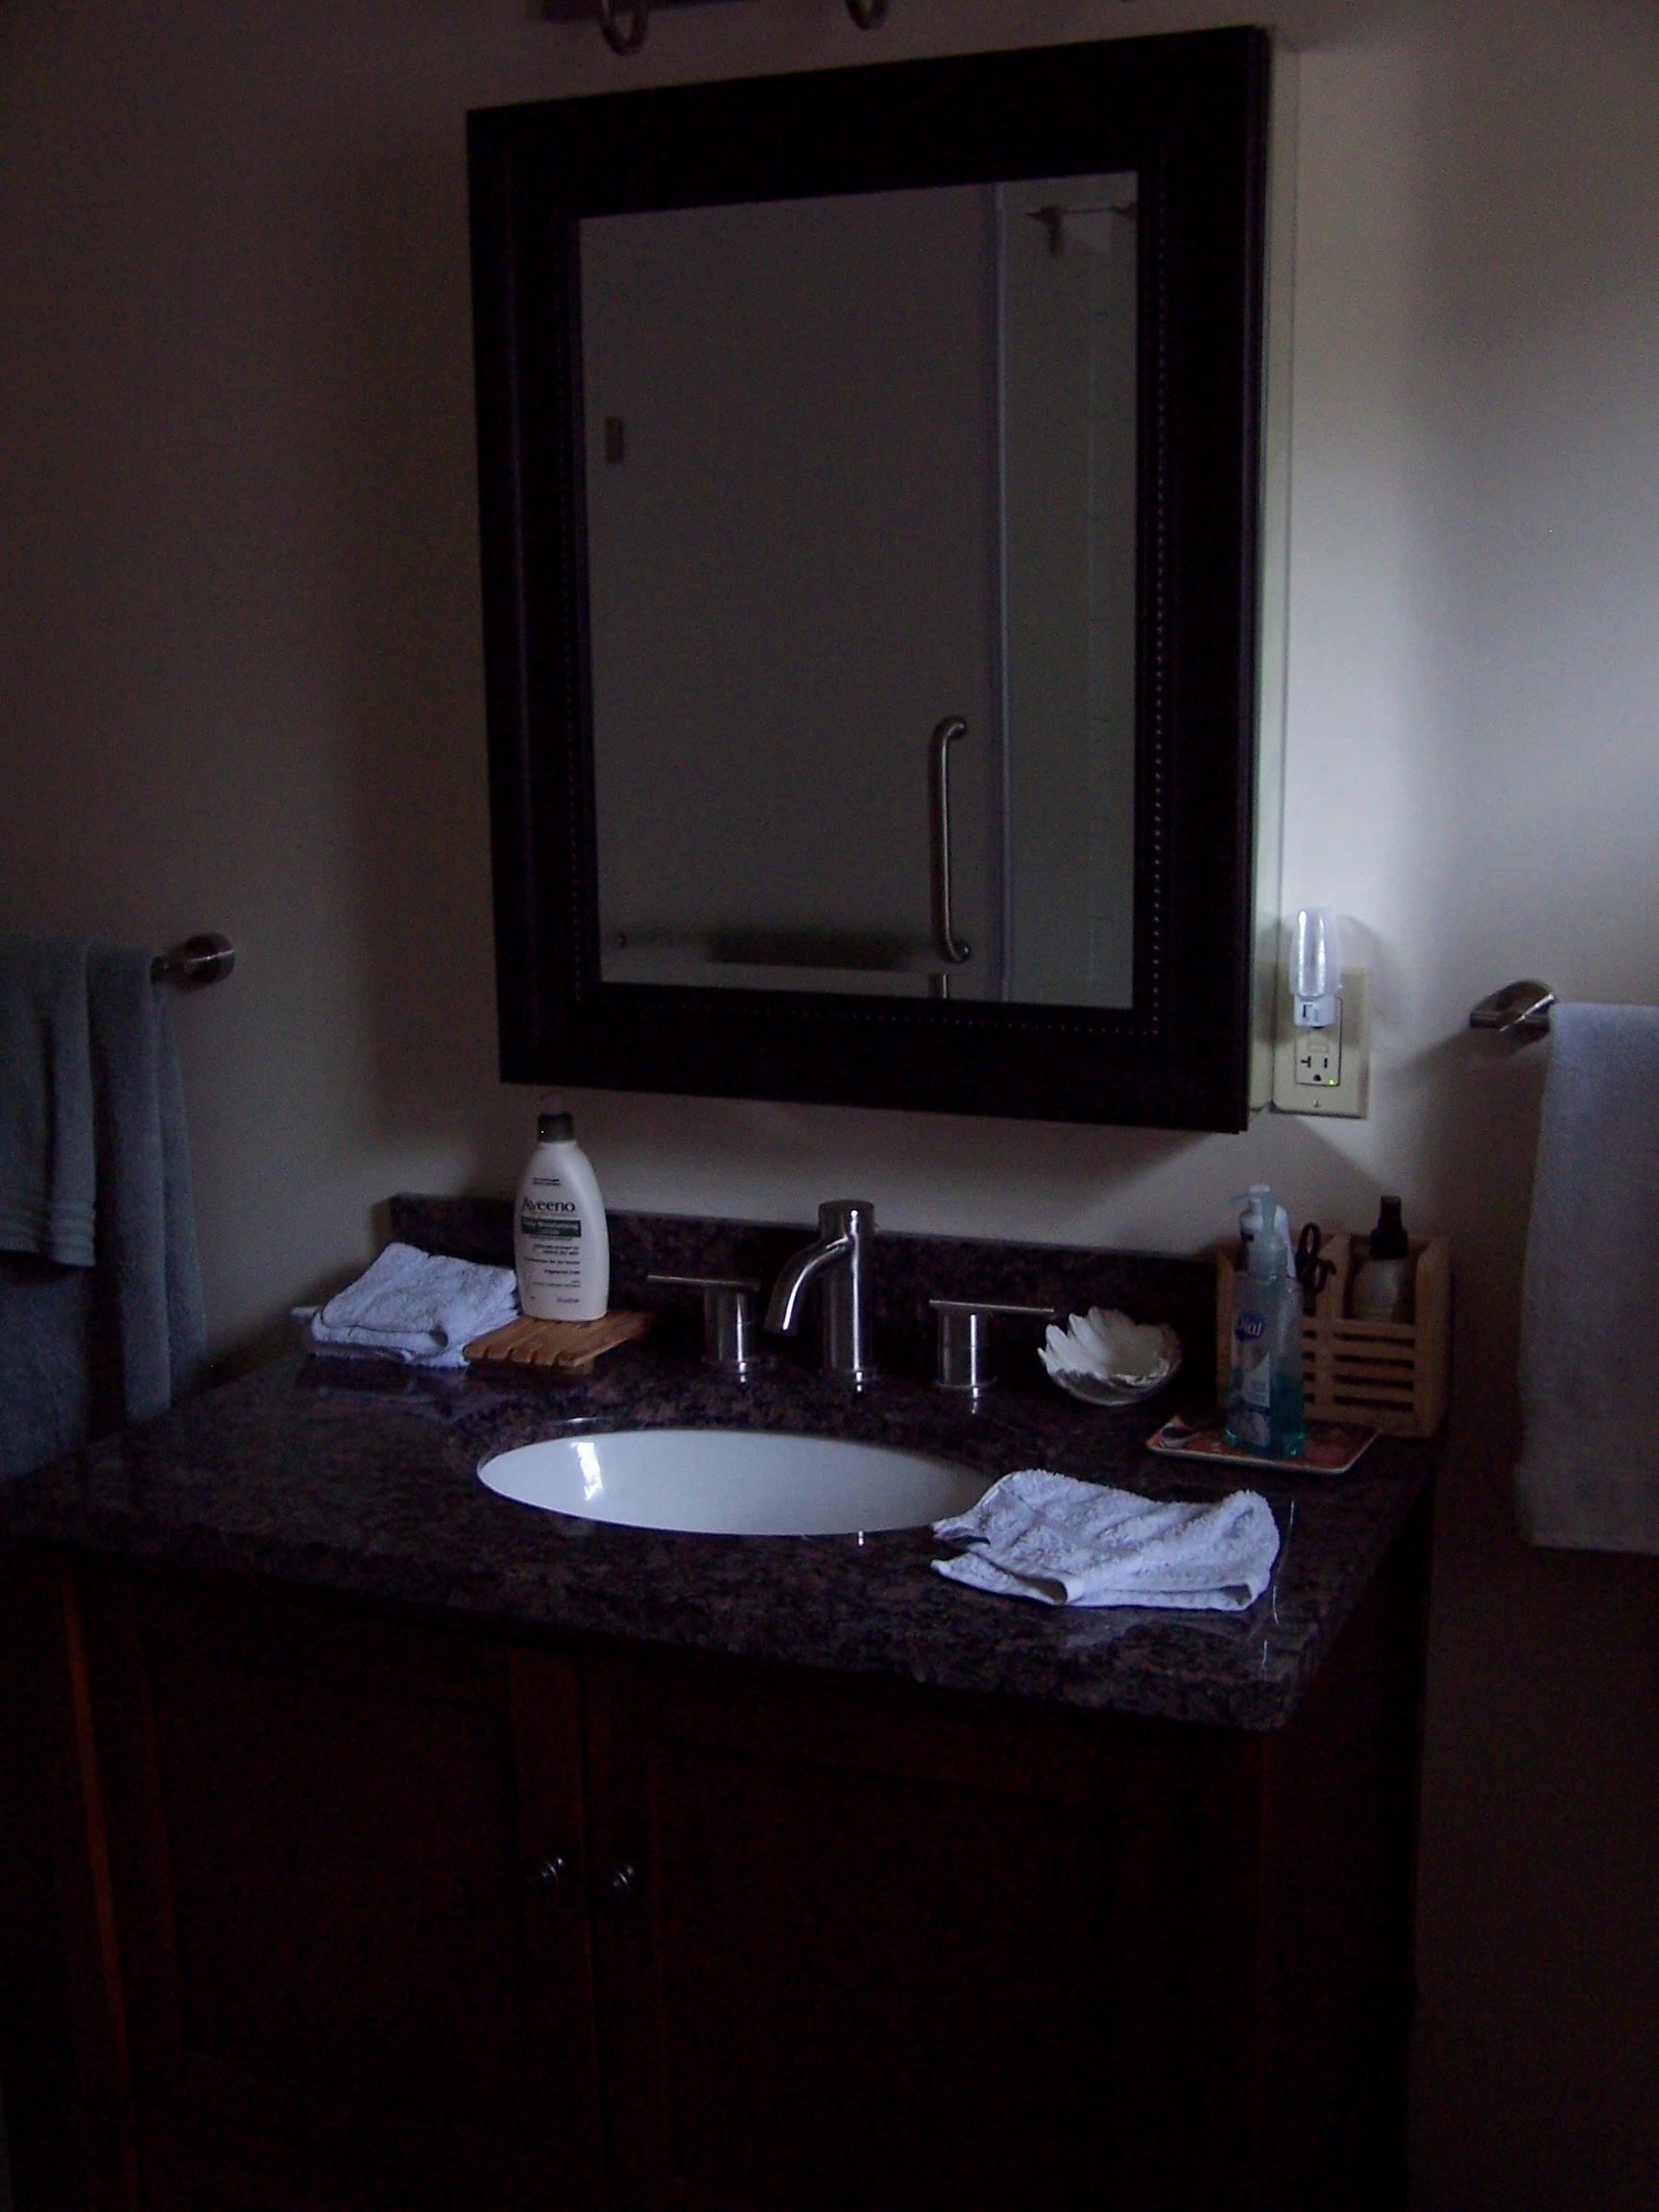 Craig 627 Silver Bathroom Downstairs 2.JPG